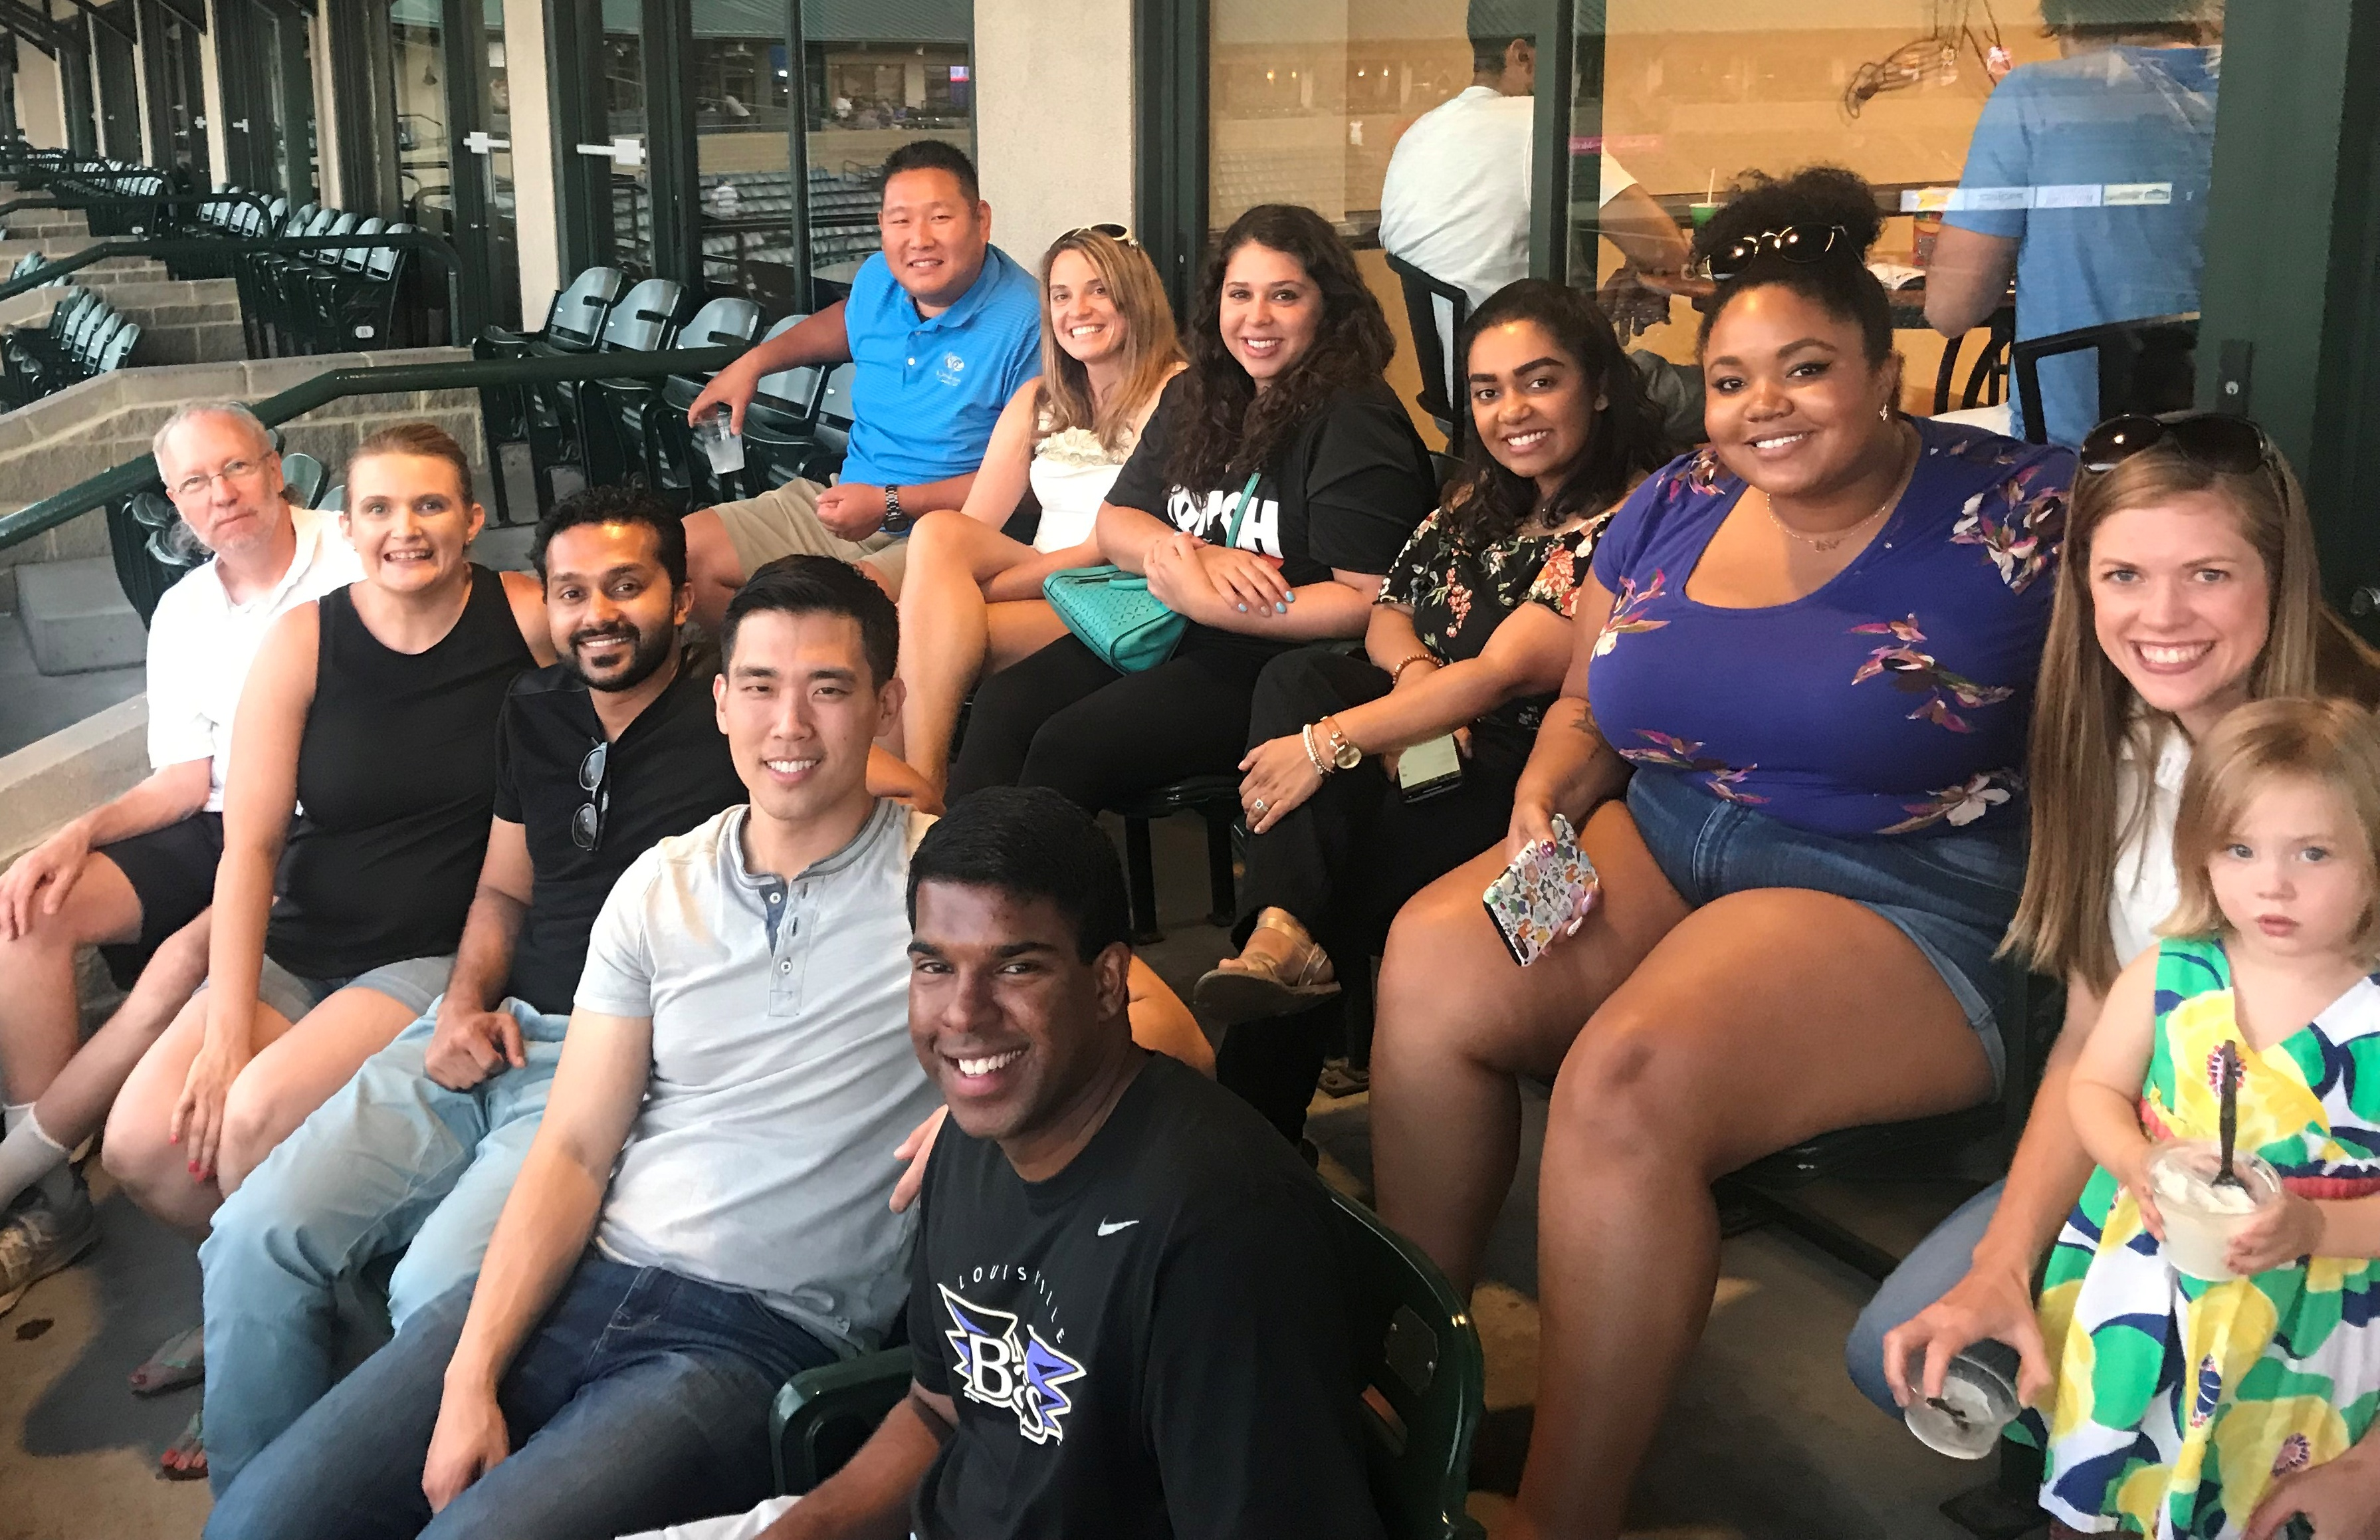 Residents at a Bats GAme